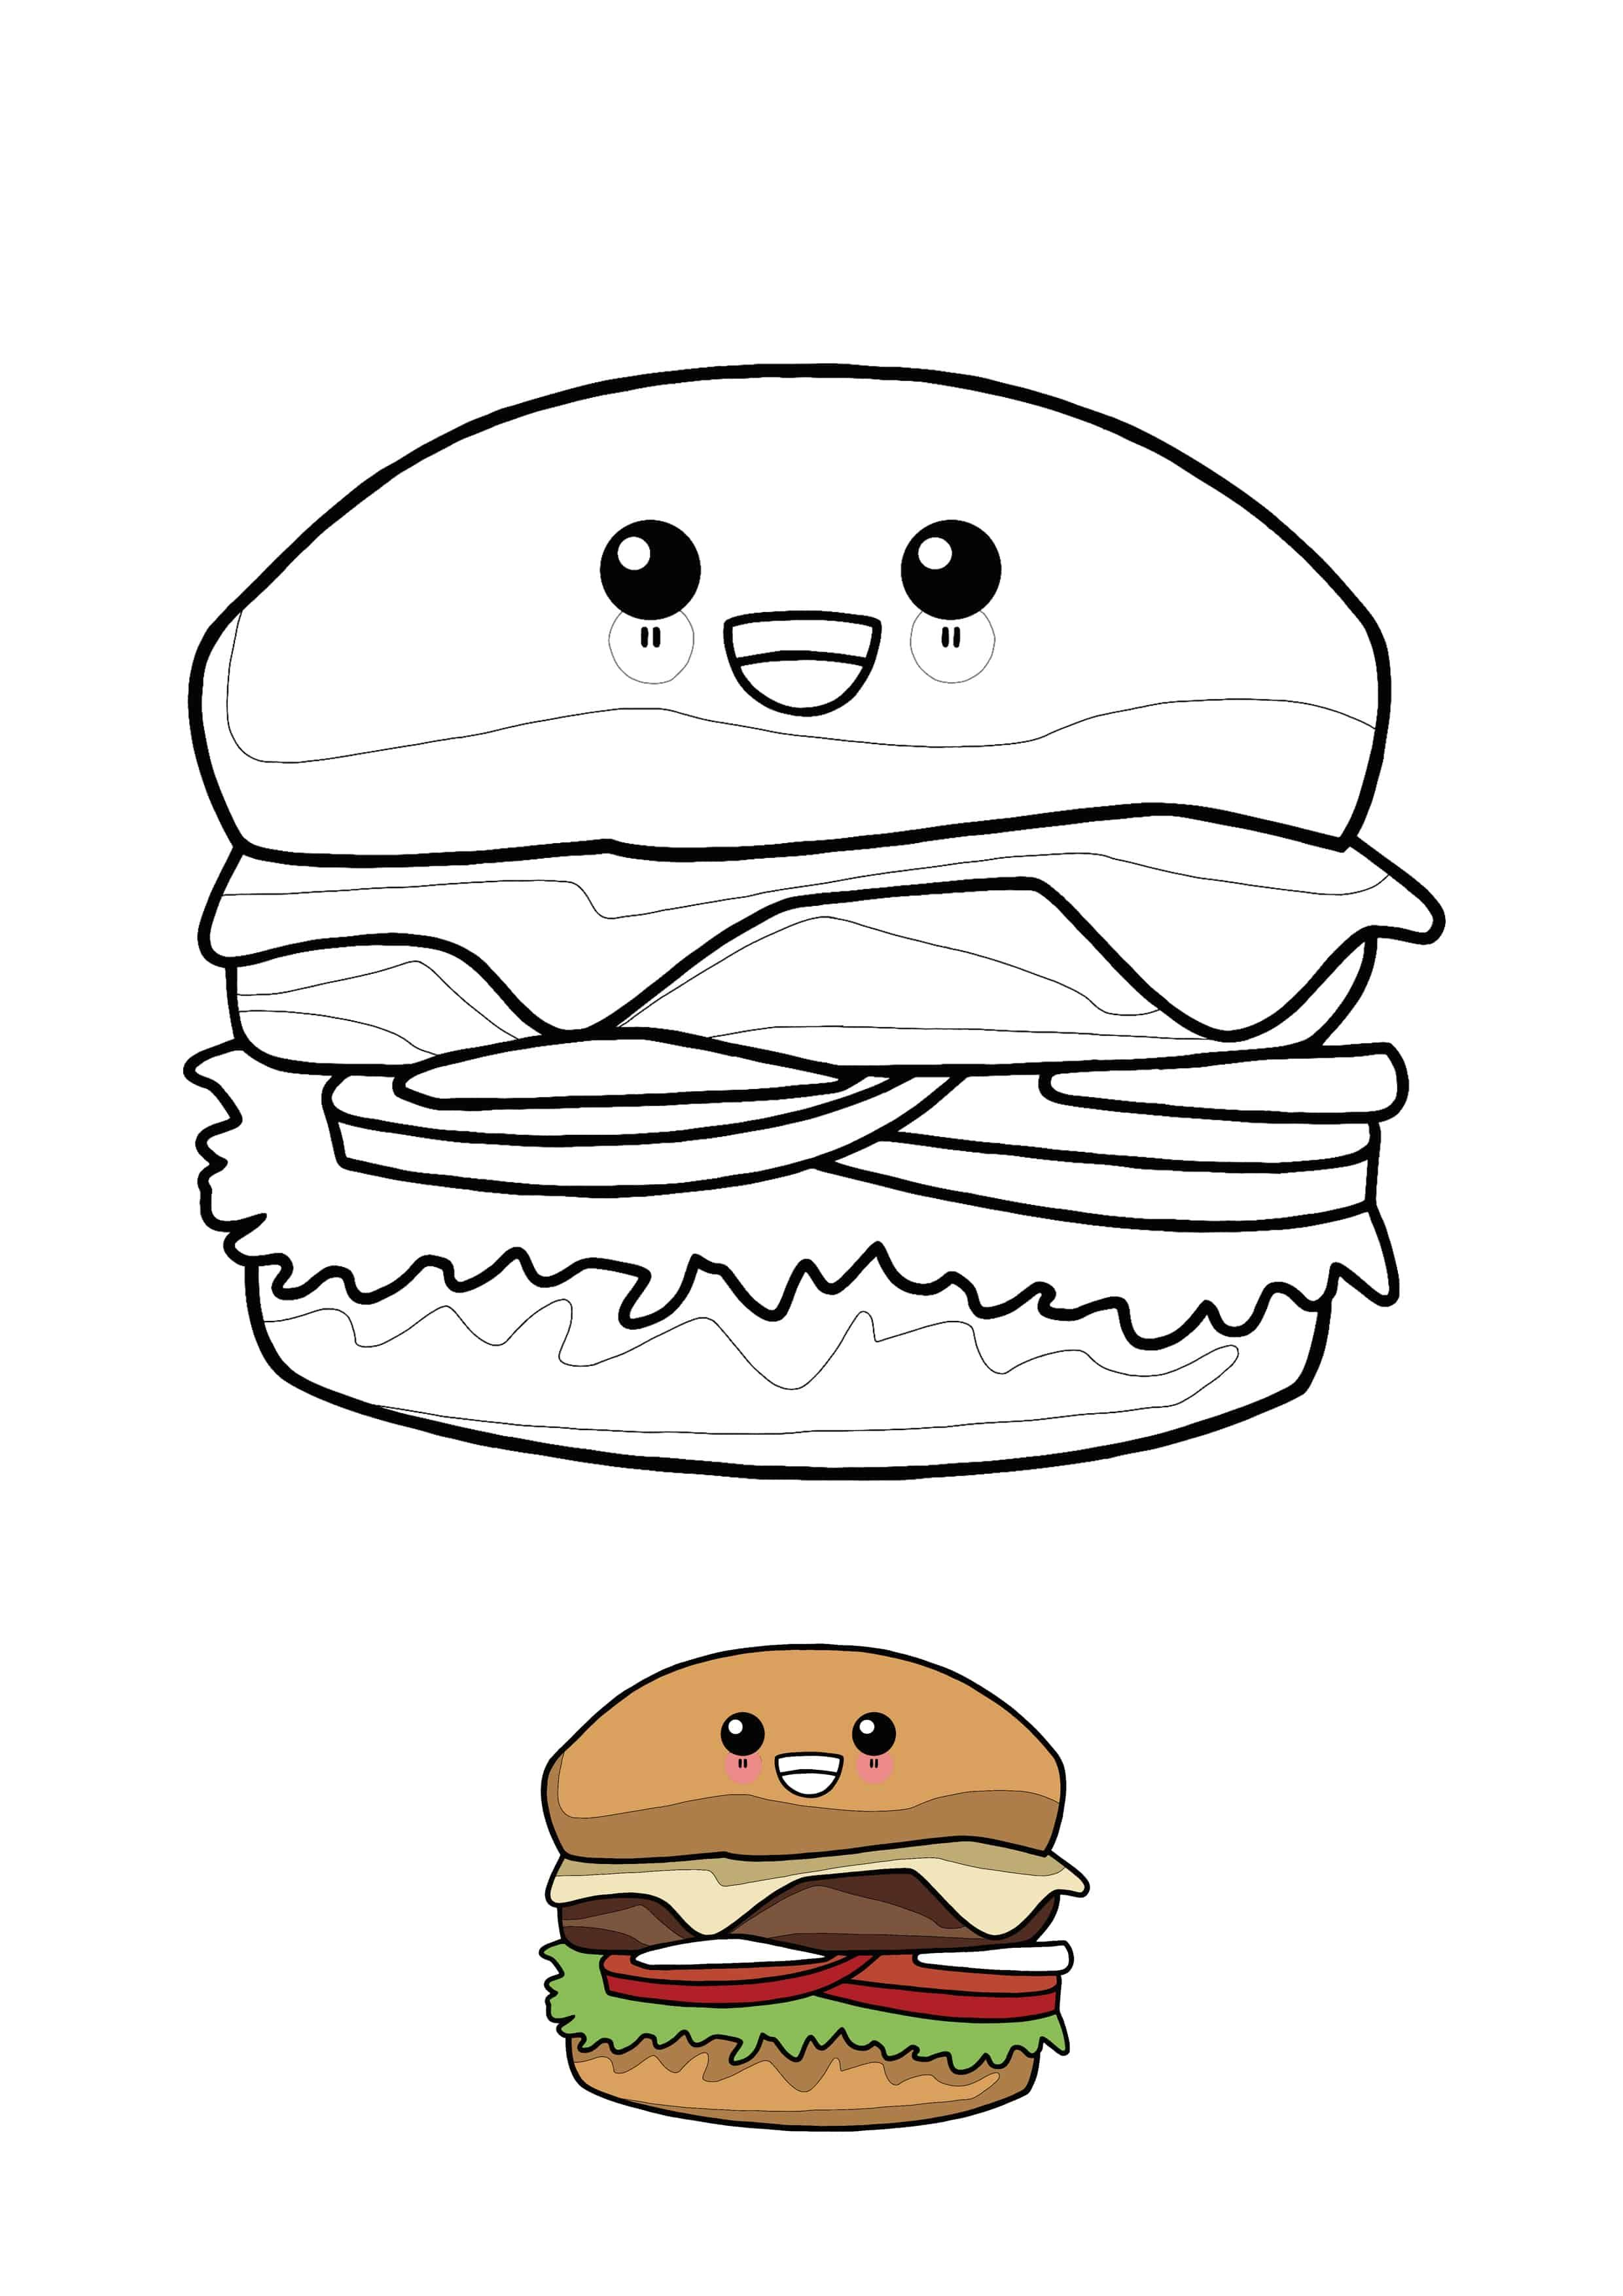 Double Decker Cheeseburger Junk Food Coloring Page Download Print Online Coloring Pages For Free Food Coloring Pages Super Coloring Pages Coloring Pages